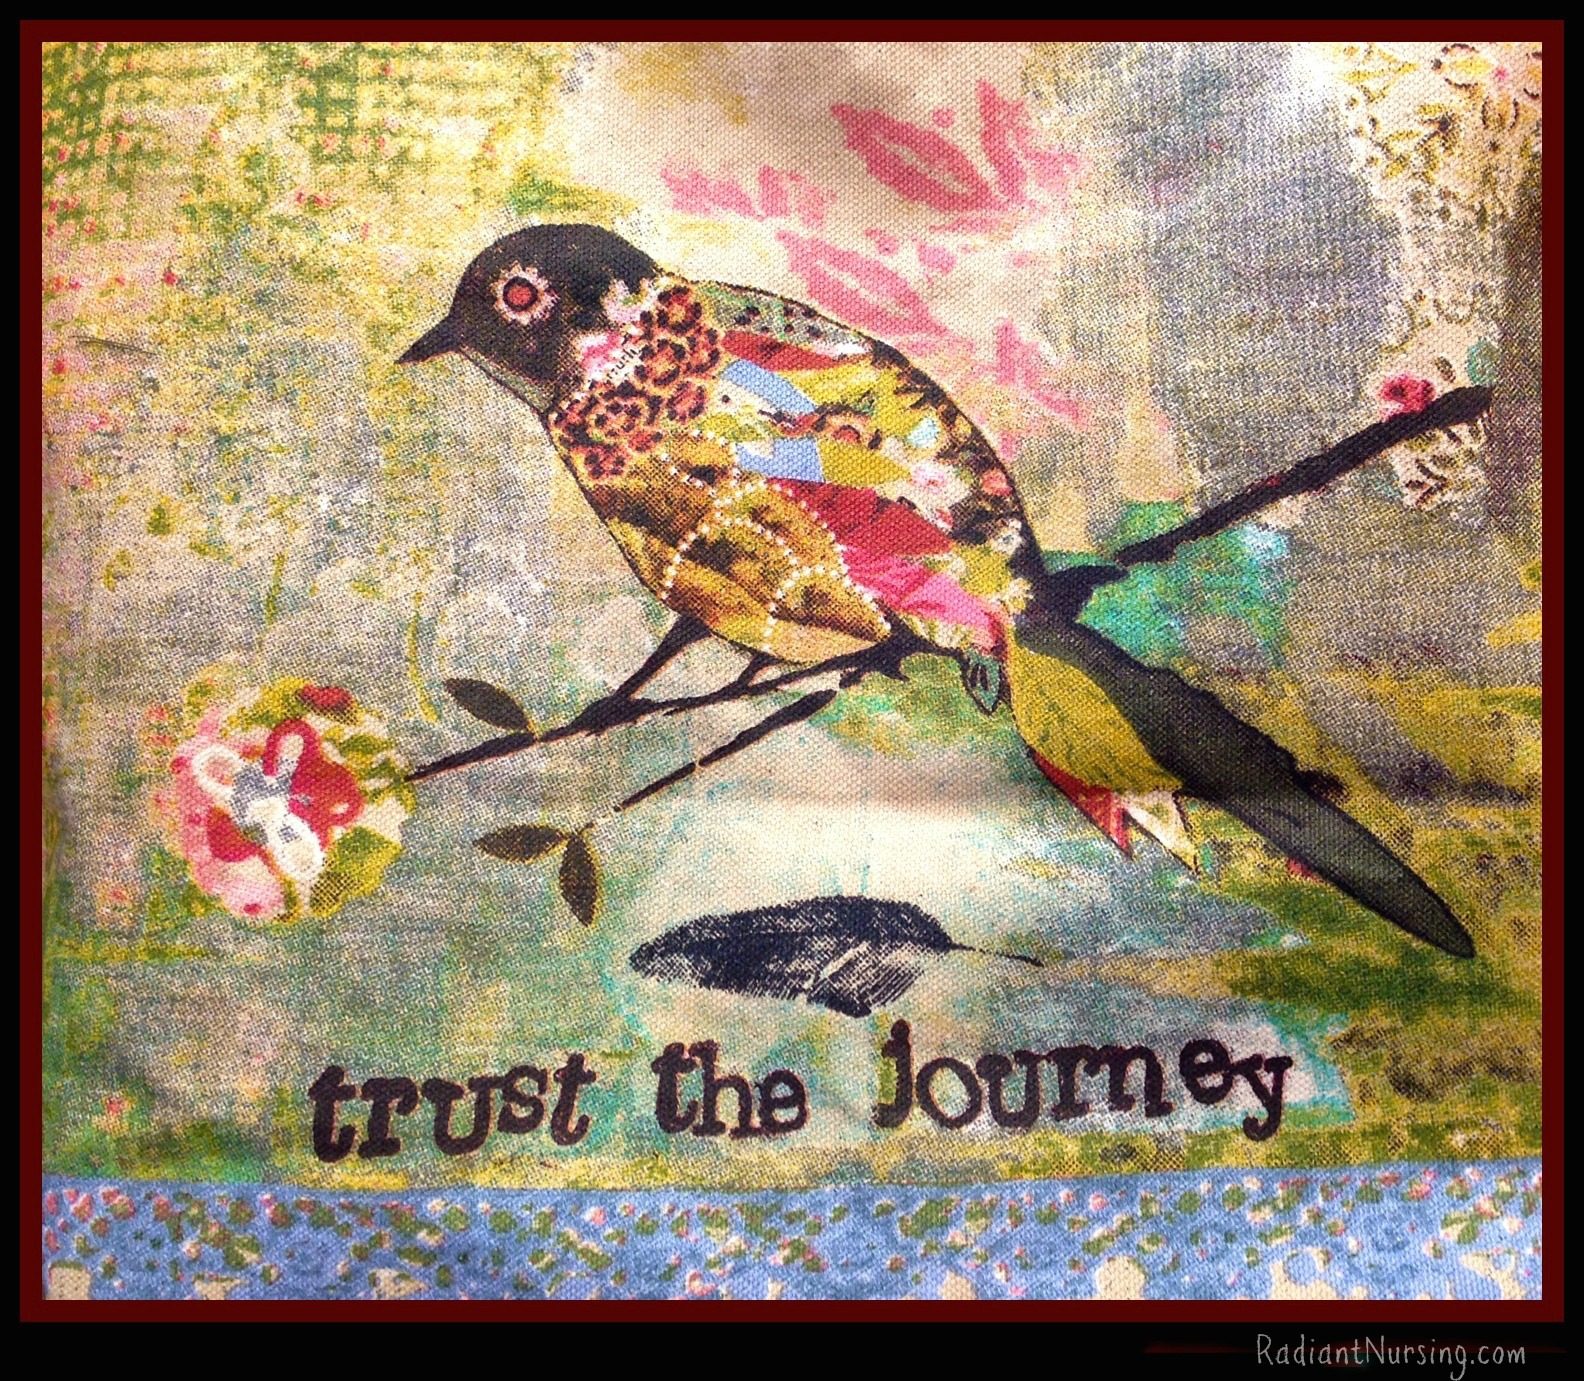 Trust the journey. Yes, even when it includes death.